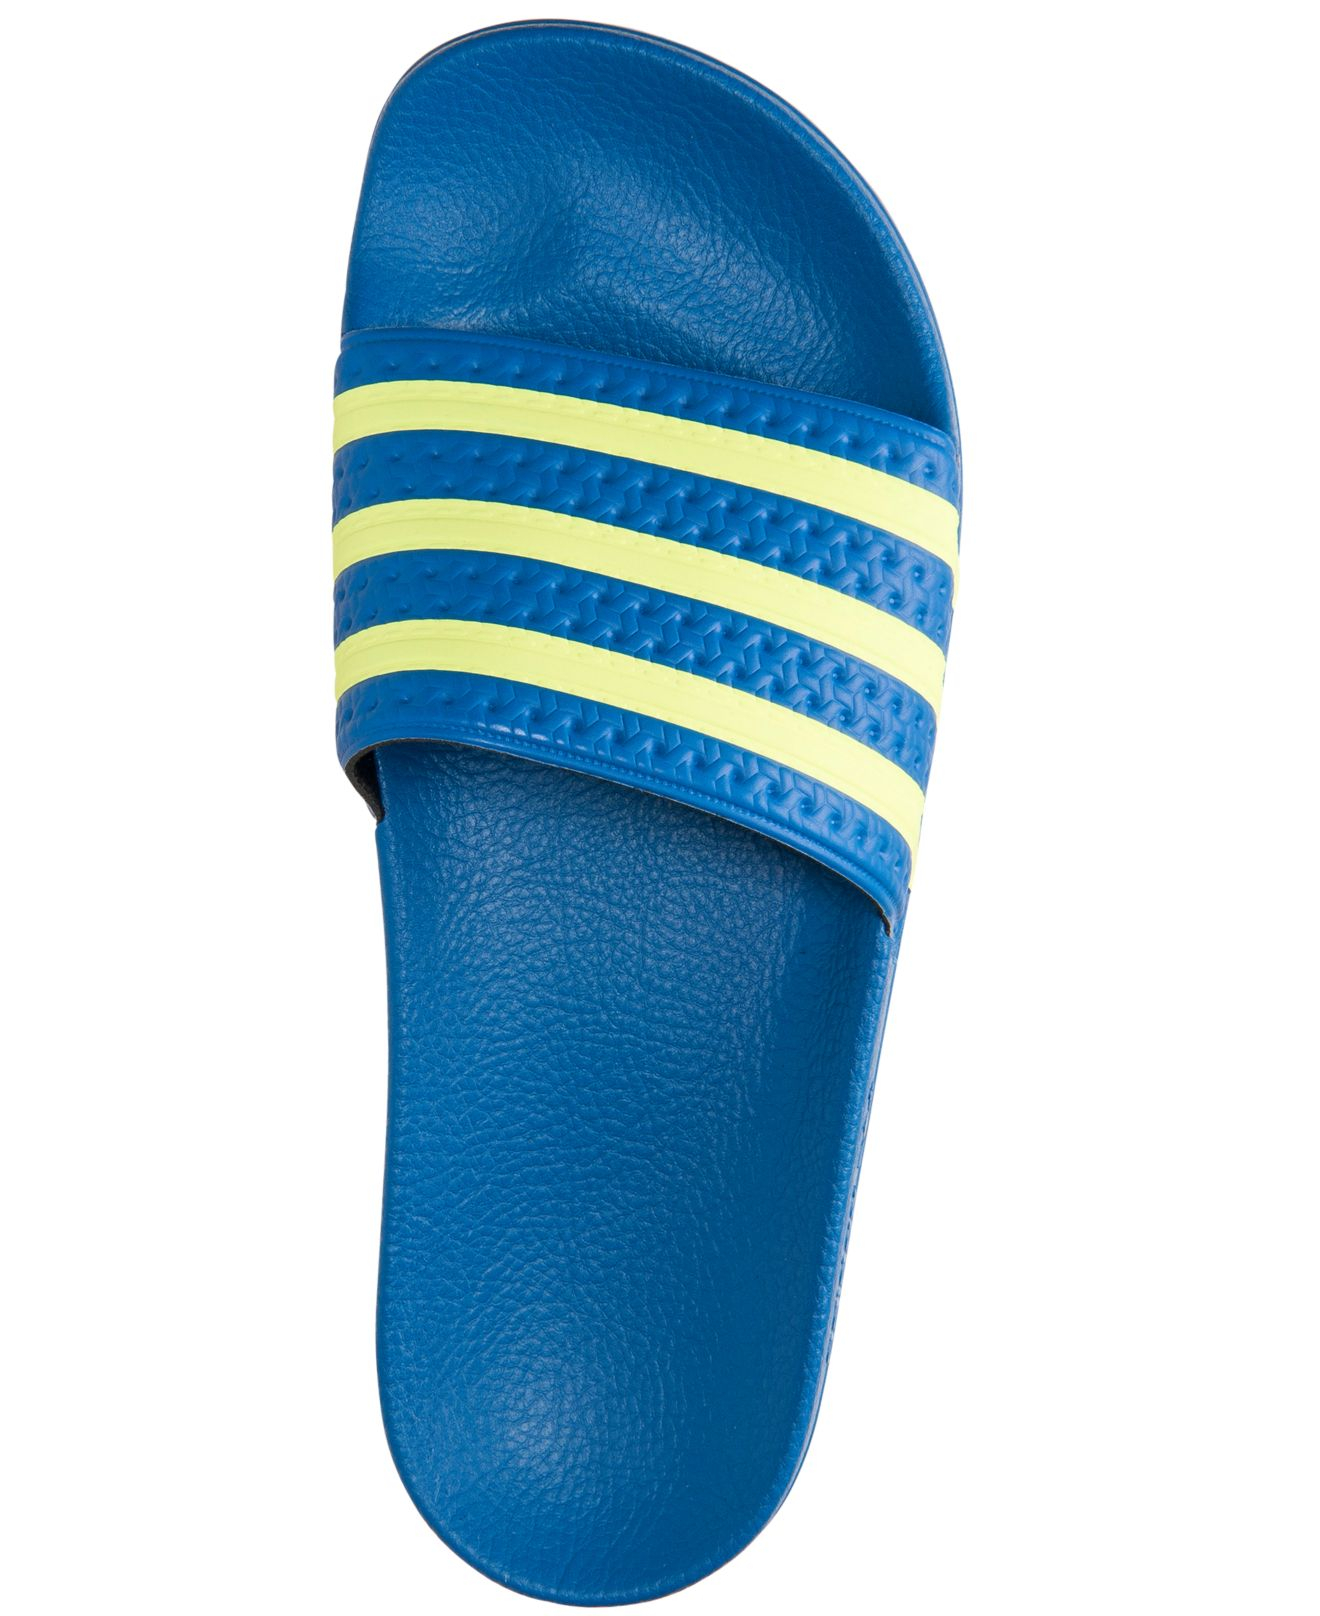 Lyst Adidas Originals Men S Adilette Slide Sandals From